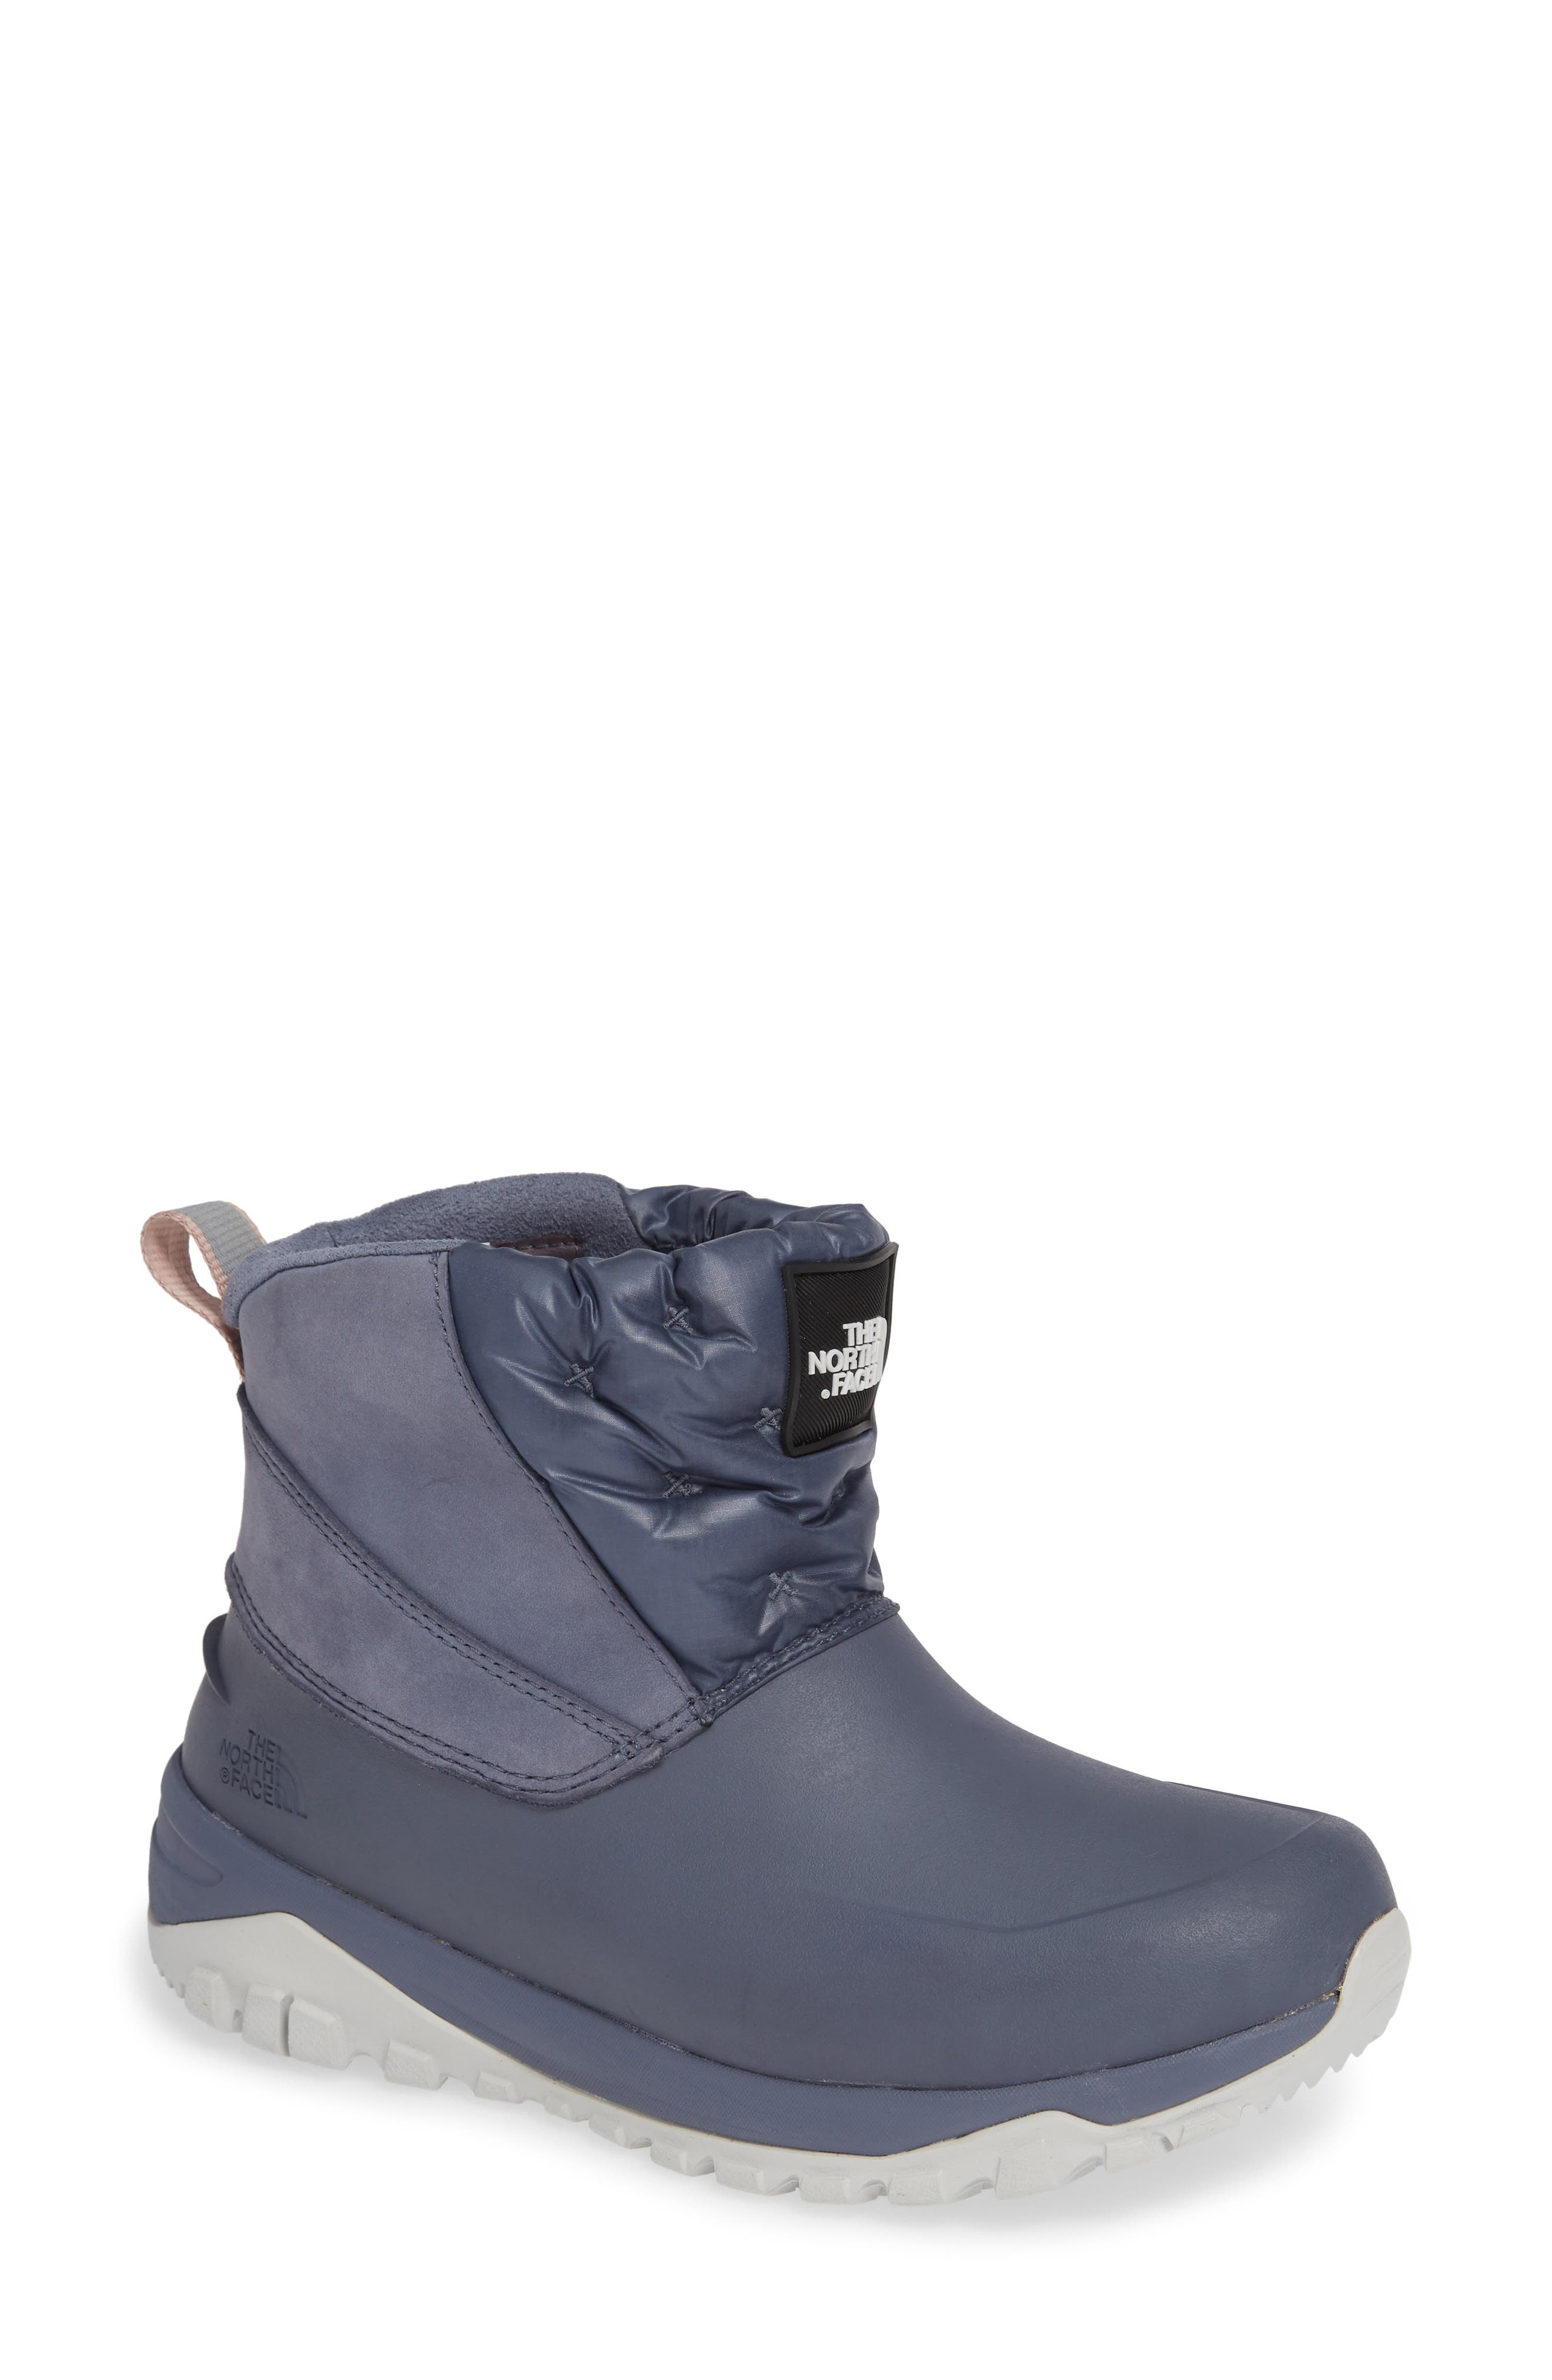 Yukiona Waterproof Ankle Boot,                             Main thumbnail 1, color,                             GRISAILLE GREY/ TIN GREY